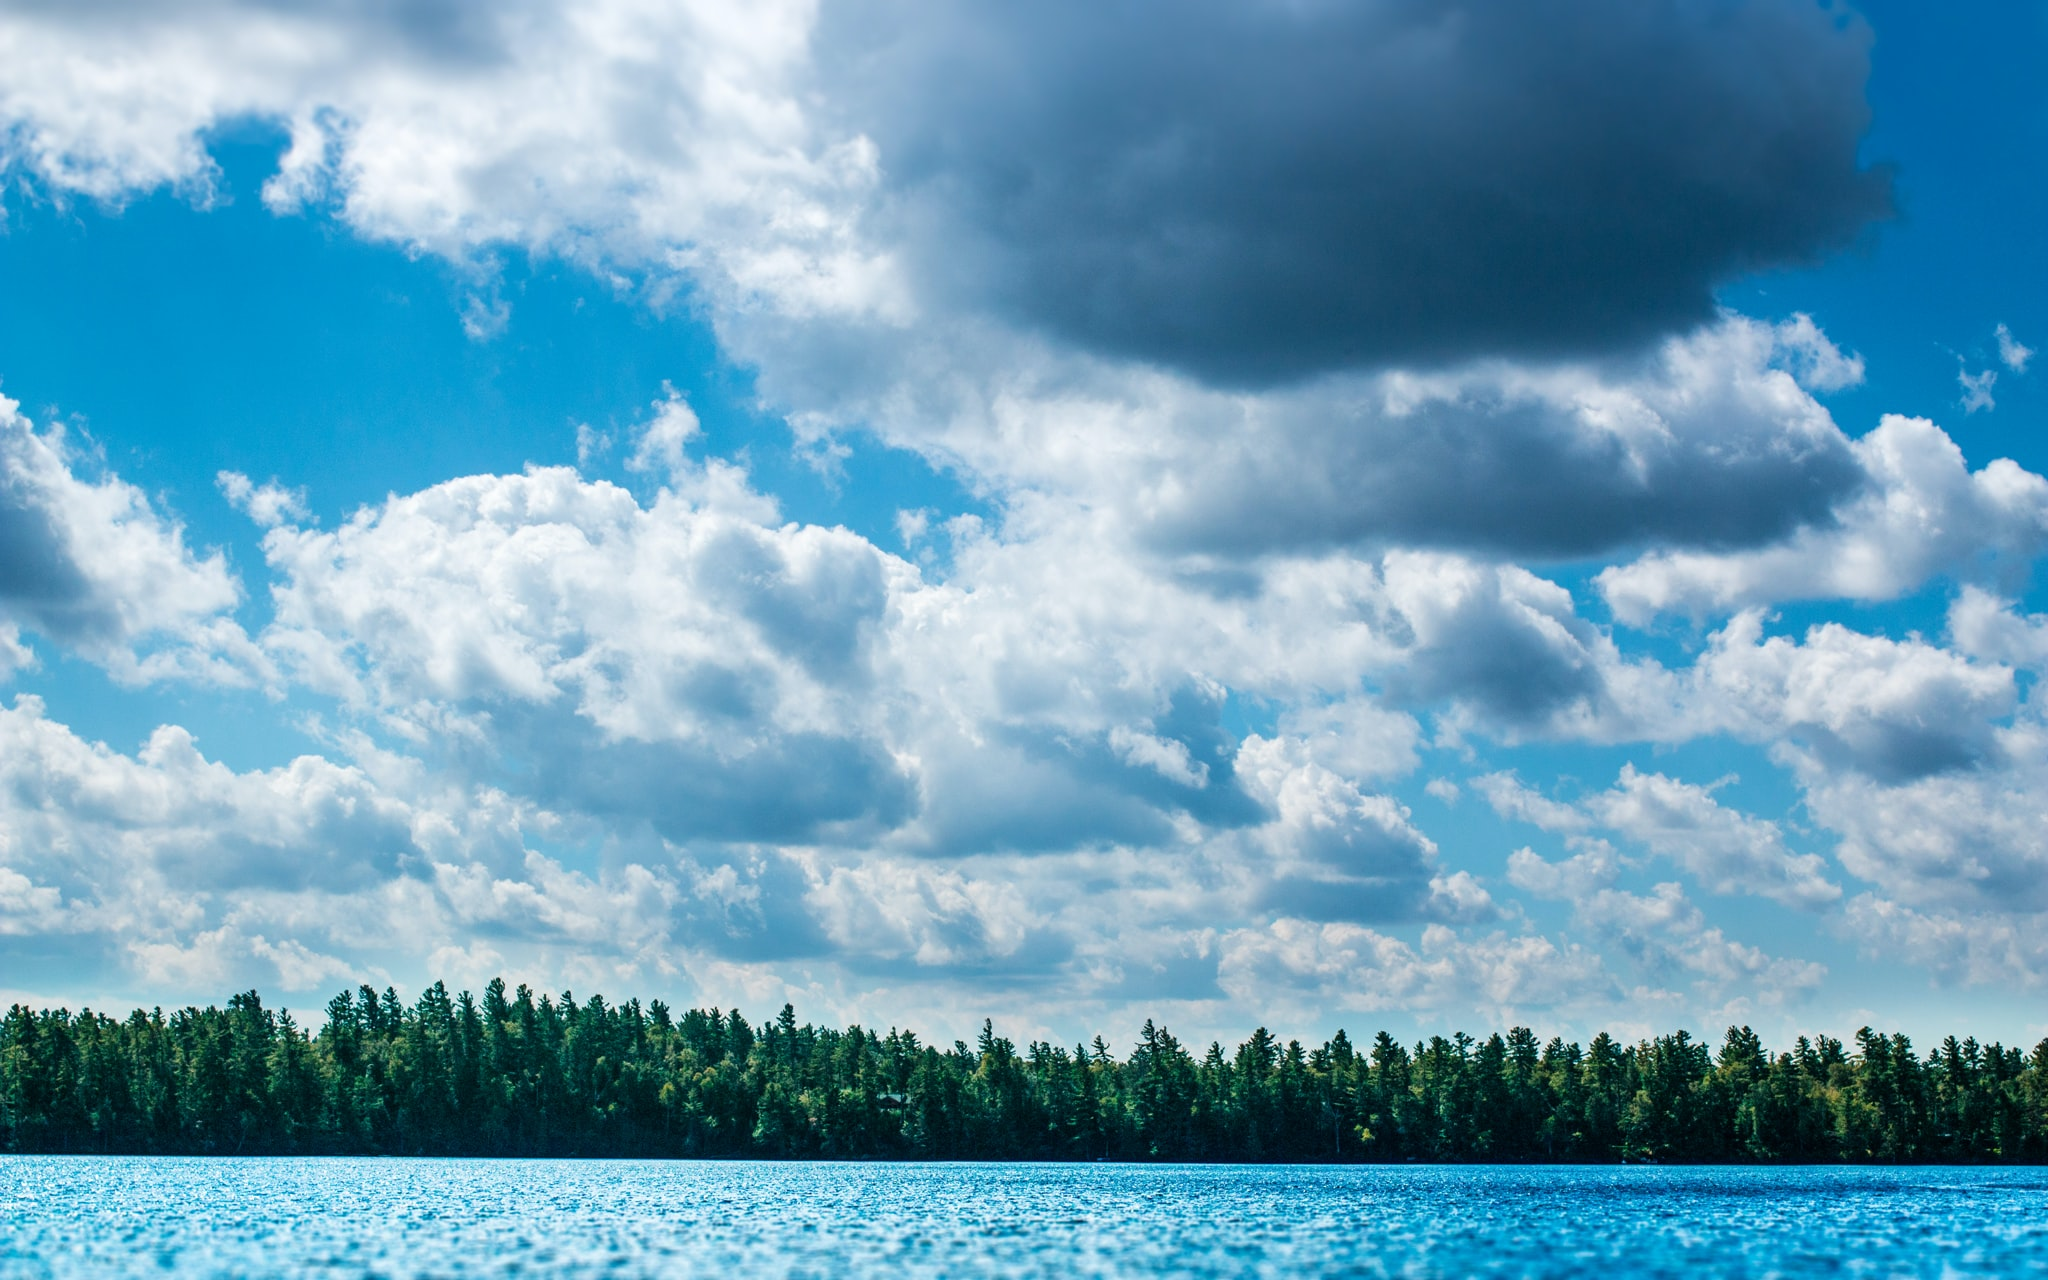 green trees across blue body of water under cloudy sky